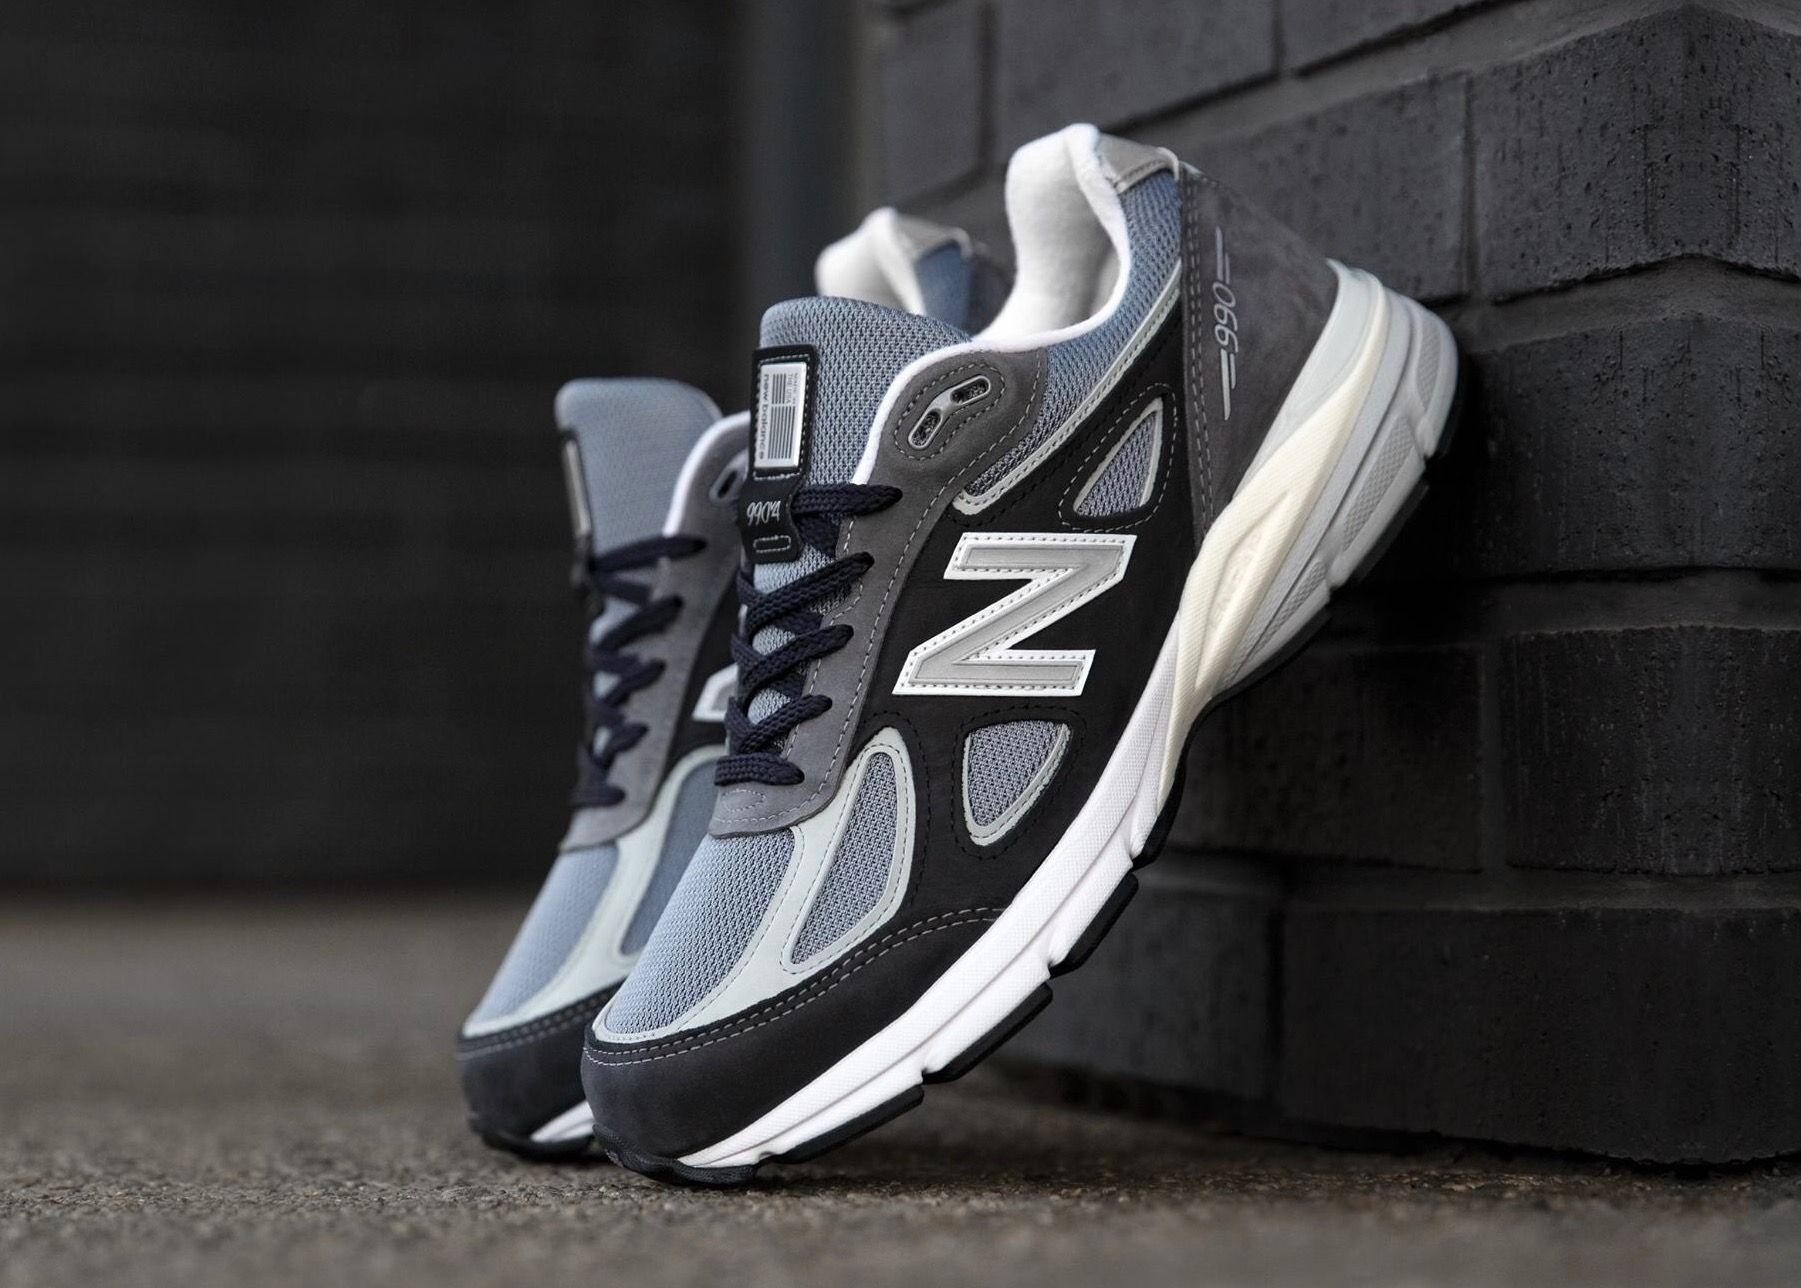 huge selection of de4fa e6561 New Balance 990v4 | New Balance in 2019 | Shoes, New balance ...